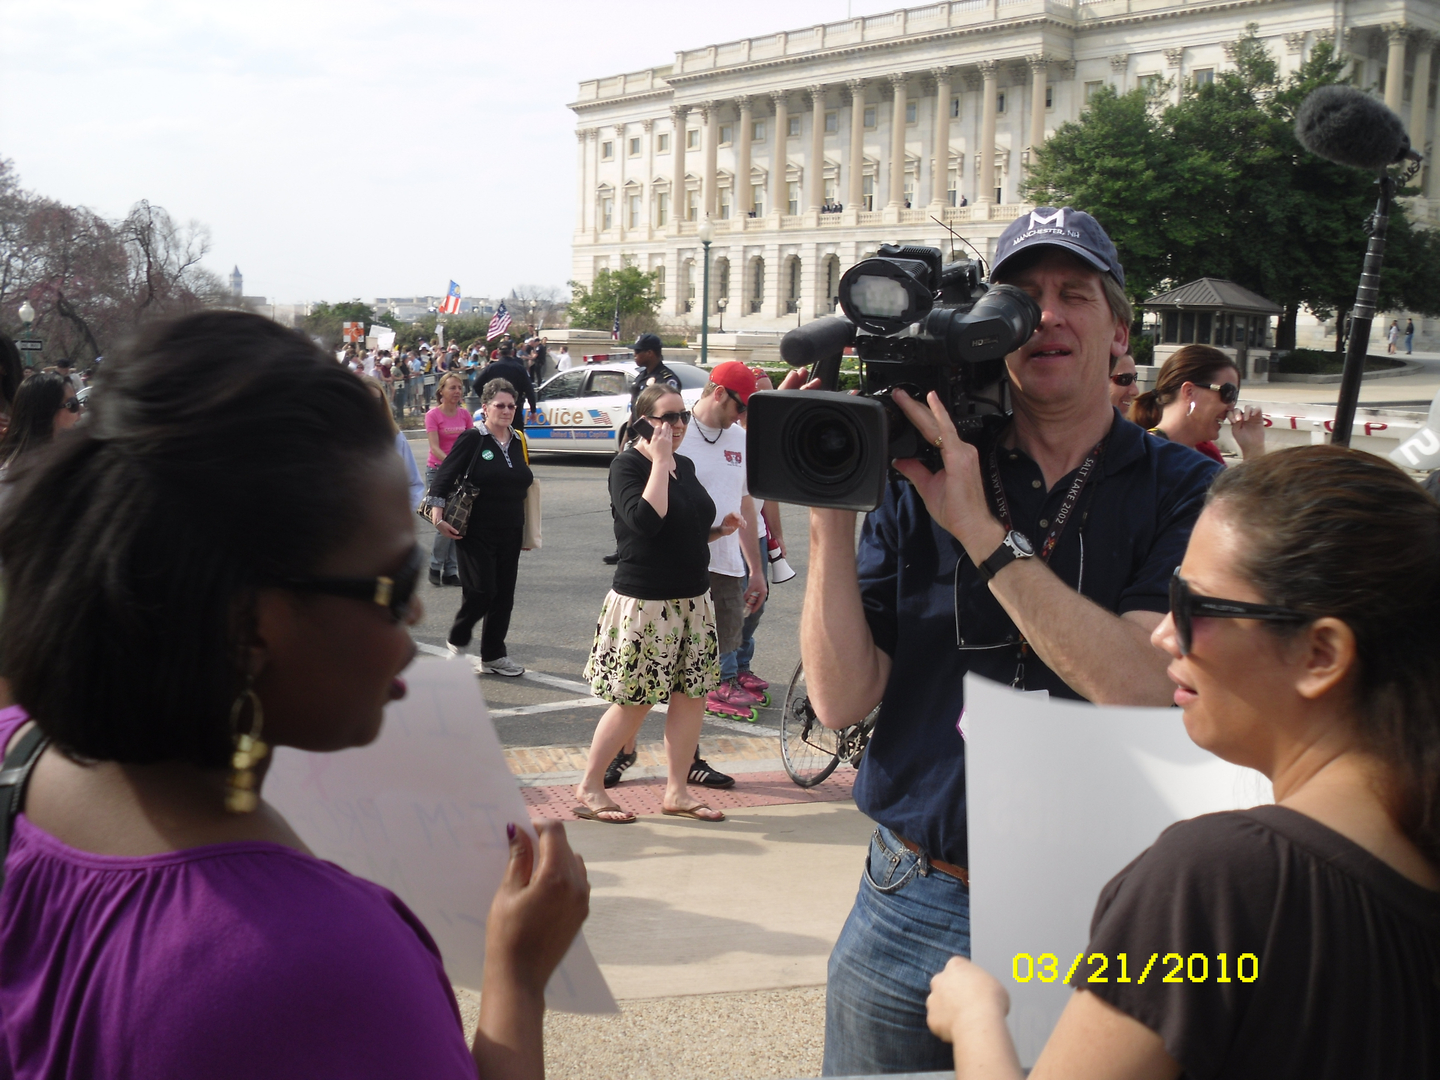 Ch 15 - Media on Capital Hill